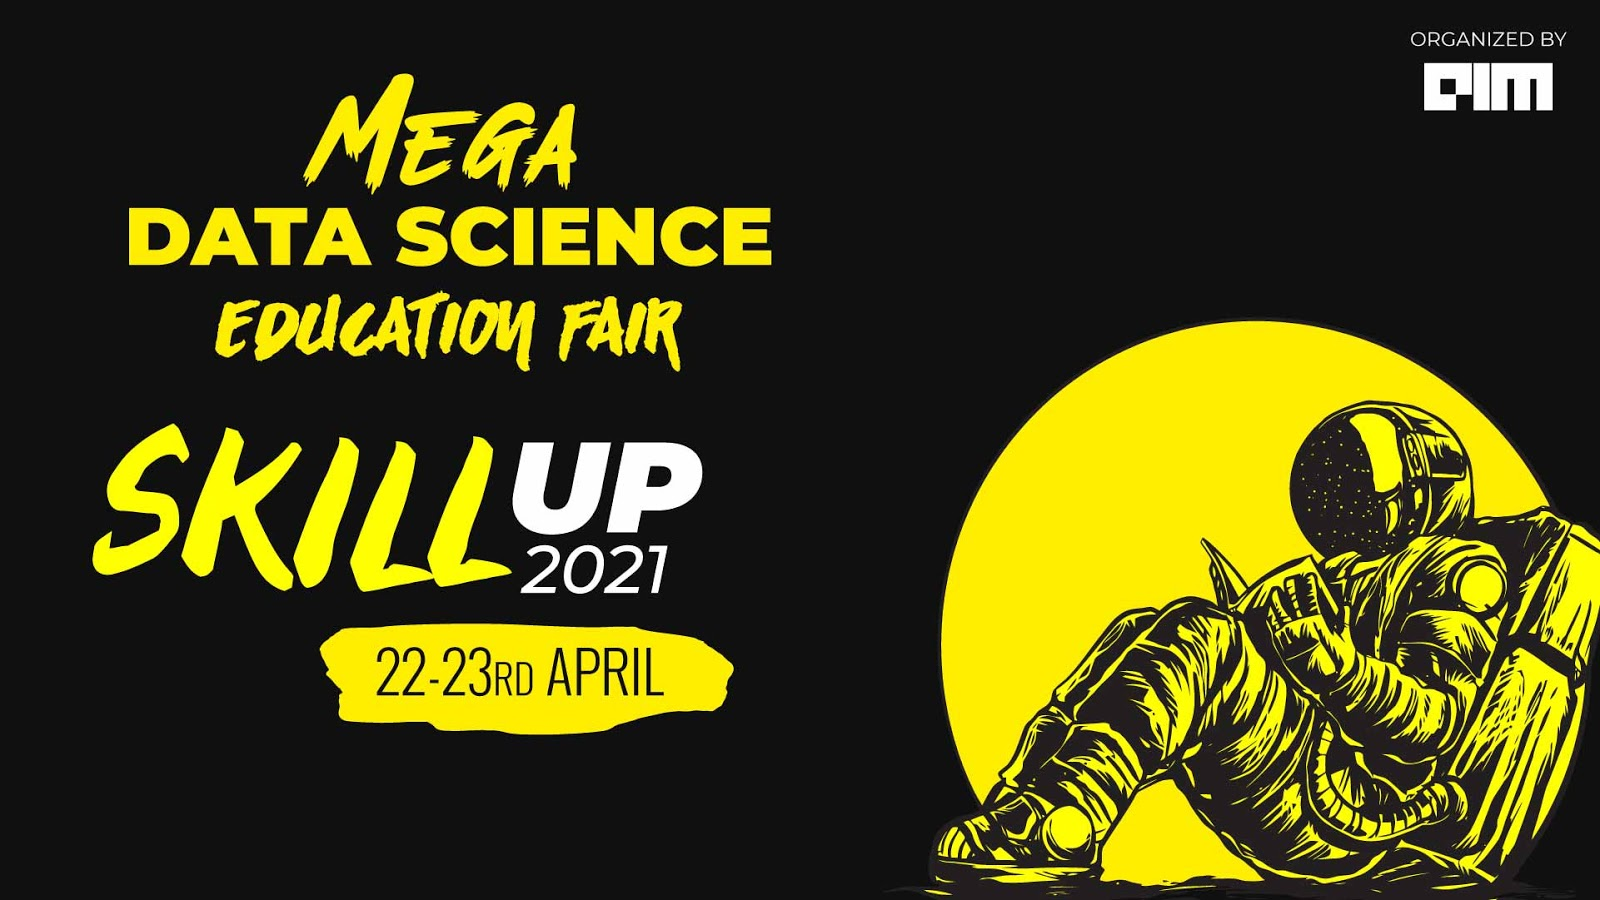 SKILLUP, India's Biggest Data Science Education Fair